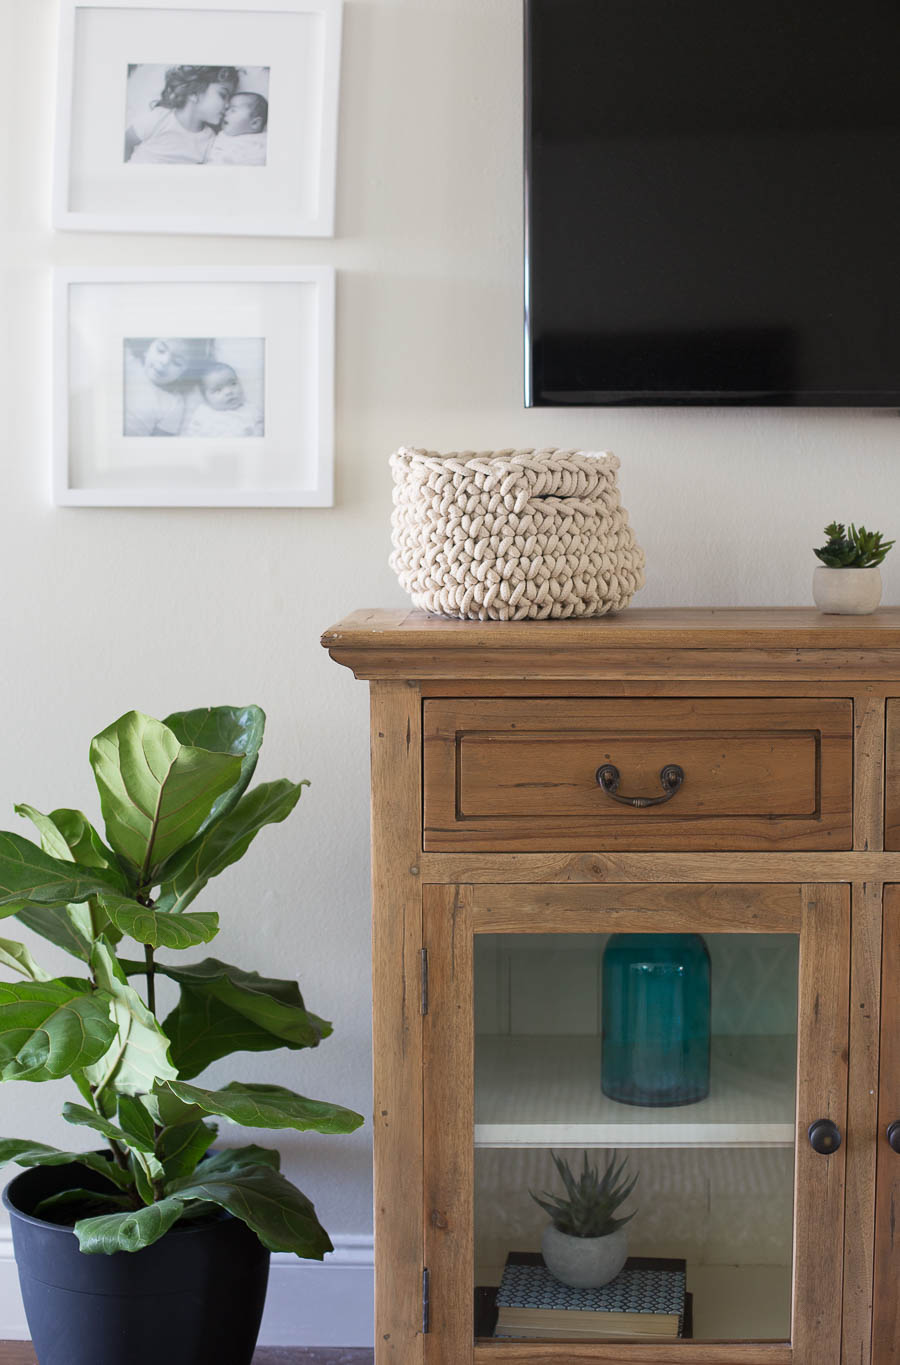 Decorating Ideas For Rentals: Decorating Ideas For Apartments And Rental Homes